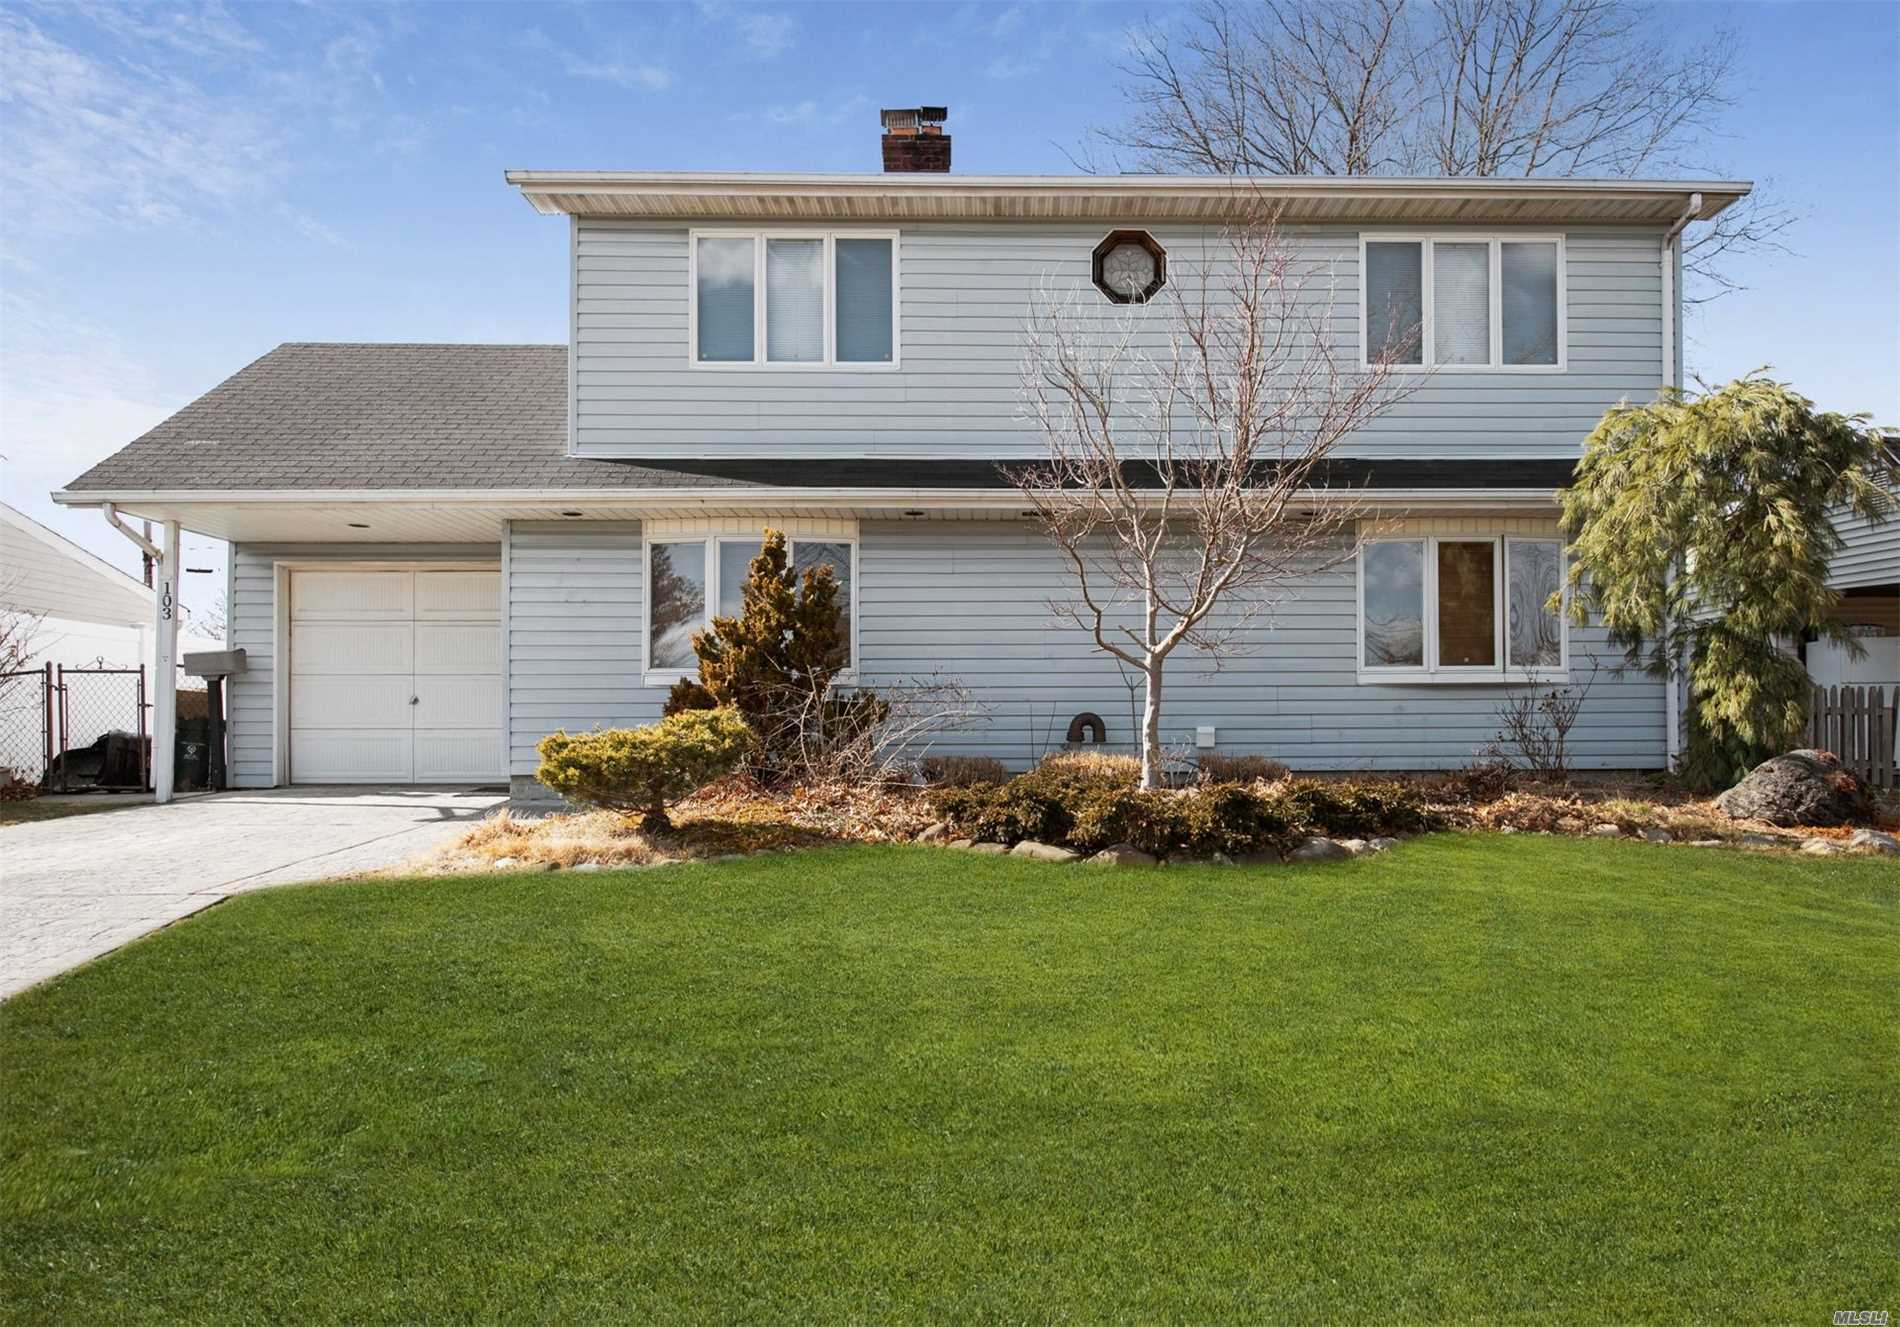 Location! Location! Location! This 4 Bedroom, 1.5 Bath Colonial In The Heart Of Levittown Features An Eat-In Kitchen, Formal Dining Room, And An Expansive Great Room. The Oversized Garage Features Attic Storage And The Backyard Is Ideal For Entertaining And Play. This Well-Kept, Move-In Ready Home With Plenty Of Indoor And Outdoor Space Is Ready For You To Add Your Special Touch. Just Minutes From Everything And With A Major Tax Grievance On File, You Have To See It To Believe It.